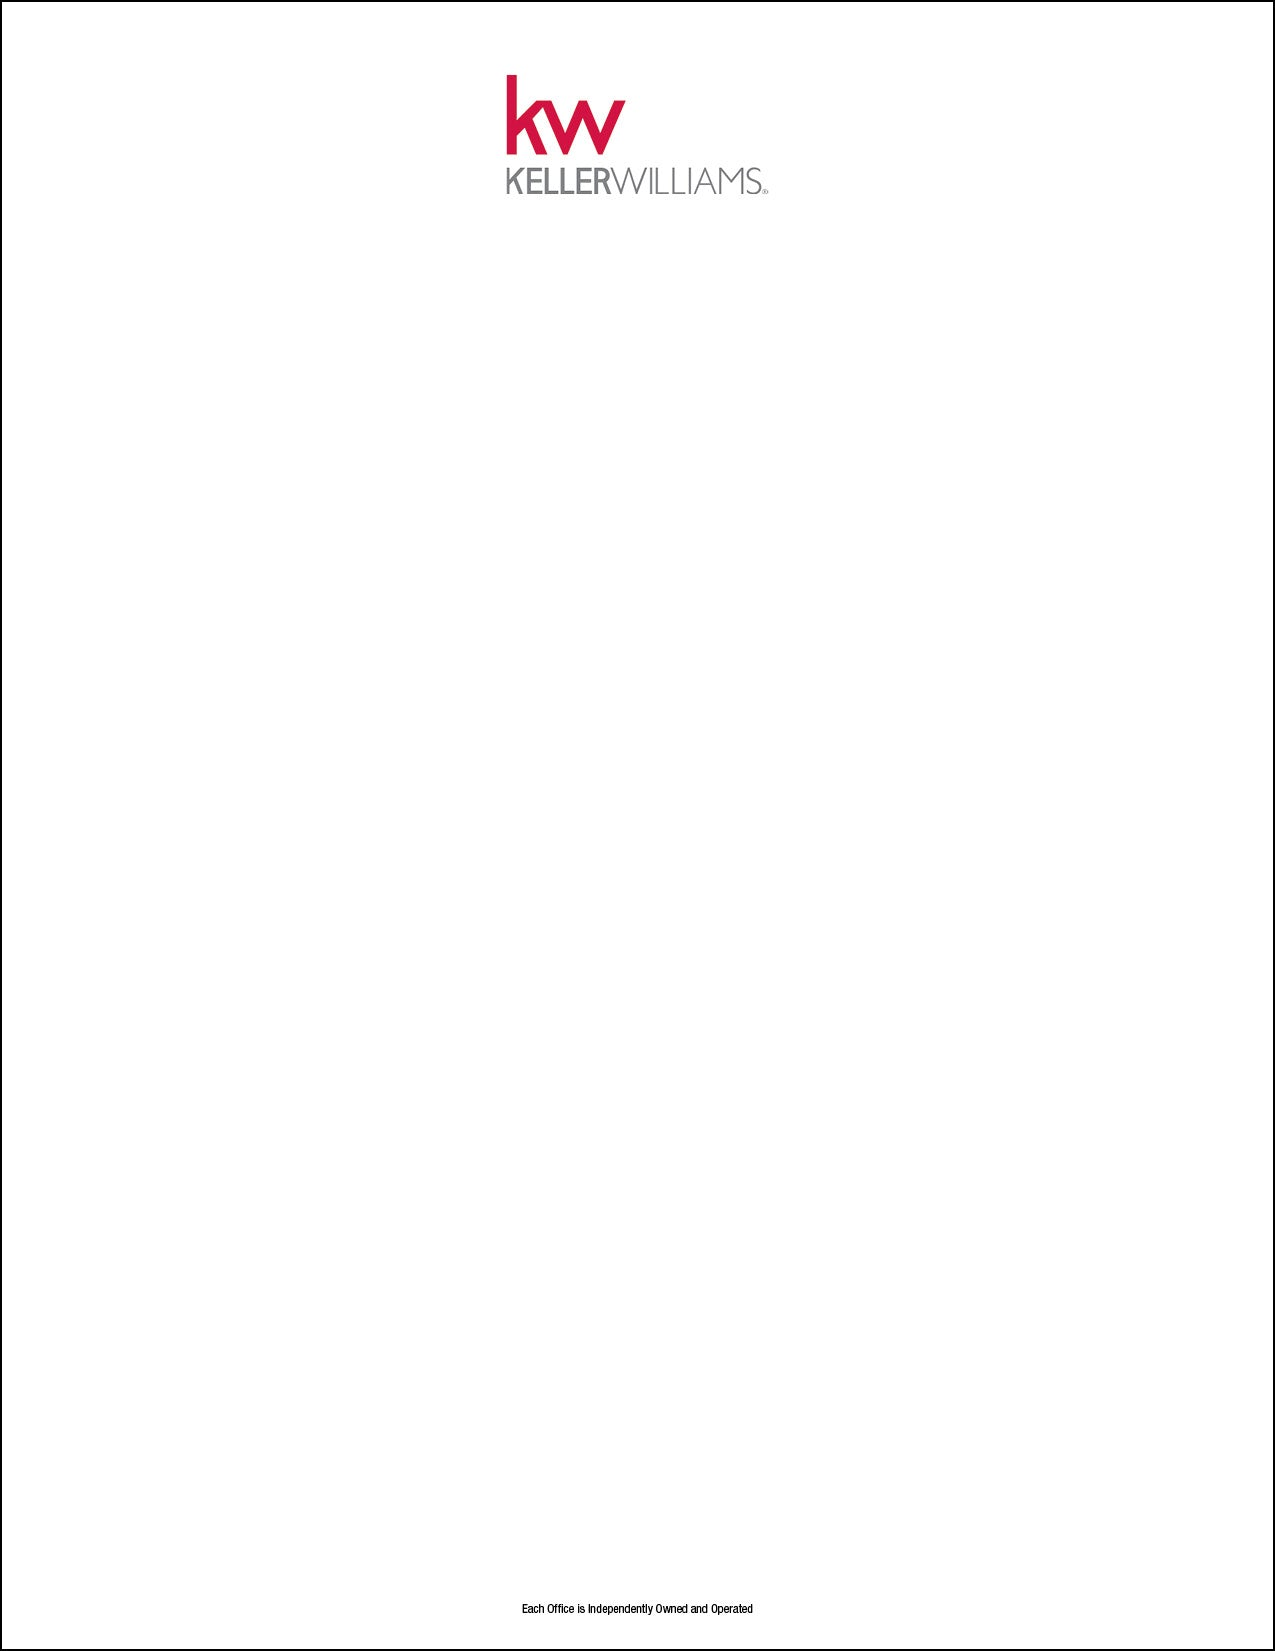 Keller Williams Letterhead